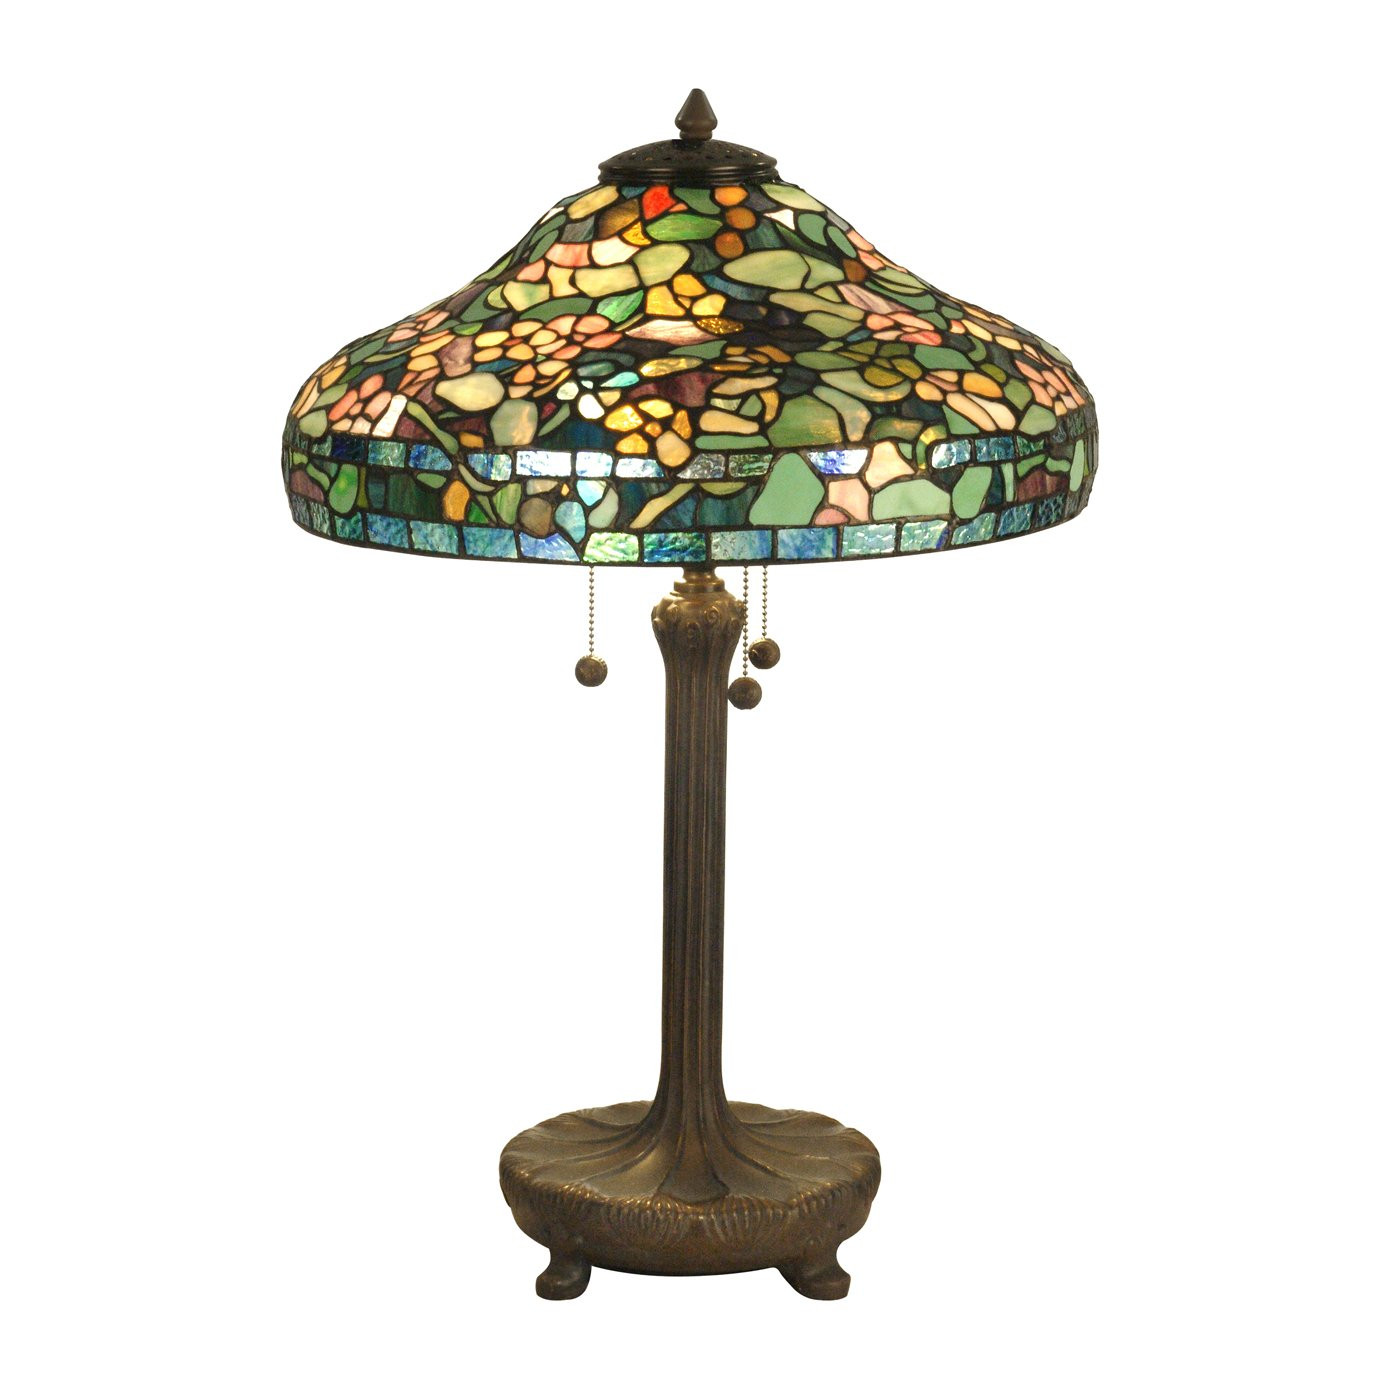 Antique Tiffany Lamps Luxury Antique Tiffany Lamps Bing Images Of Amazing 47 Photos Antique Tiffany Lamps